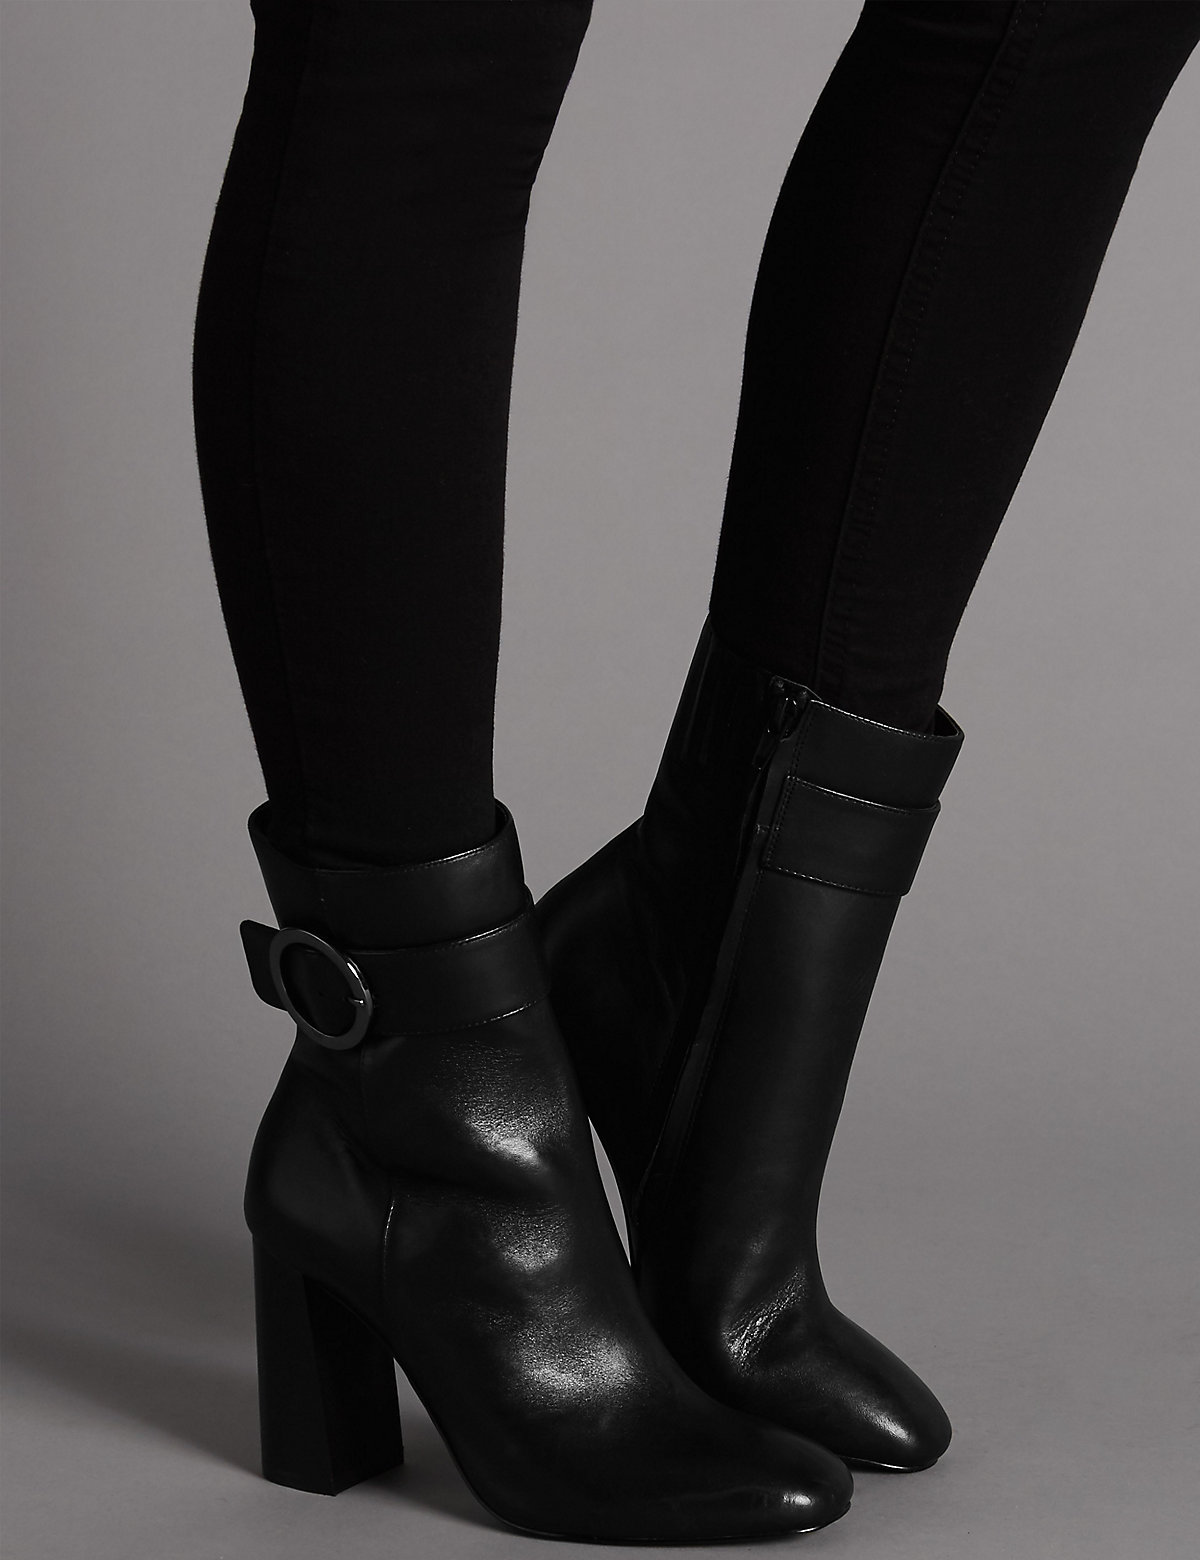 Autograph Leather High Ring Ankle Boots with Insolia